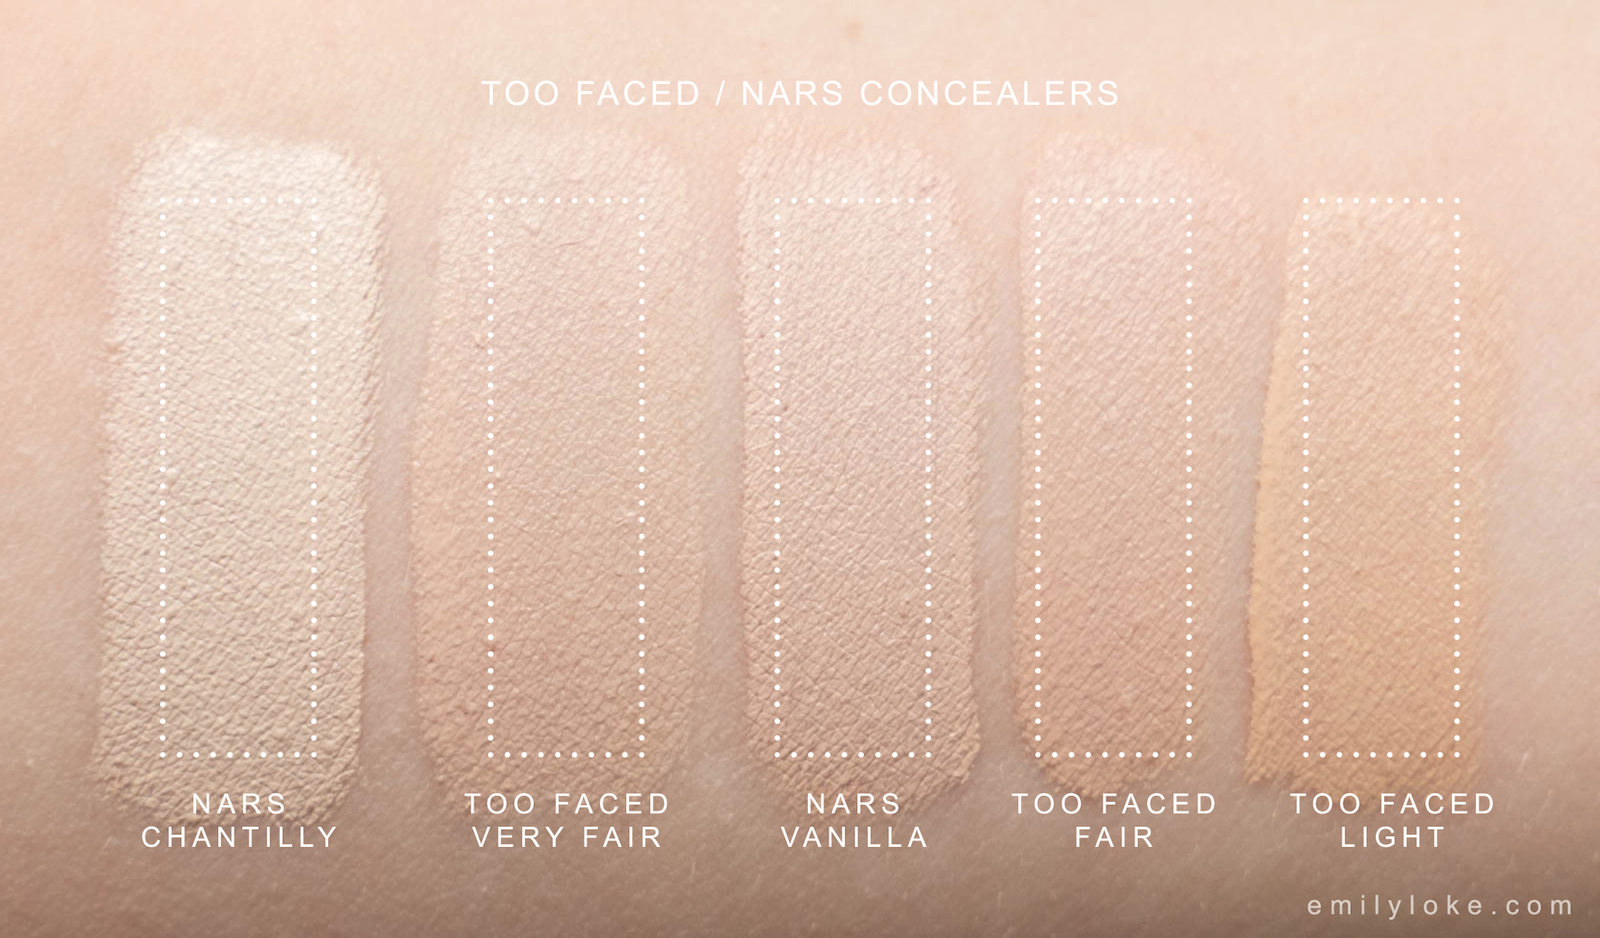 too faced vs nars concealer